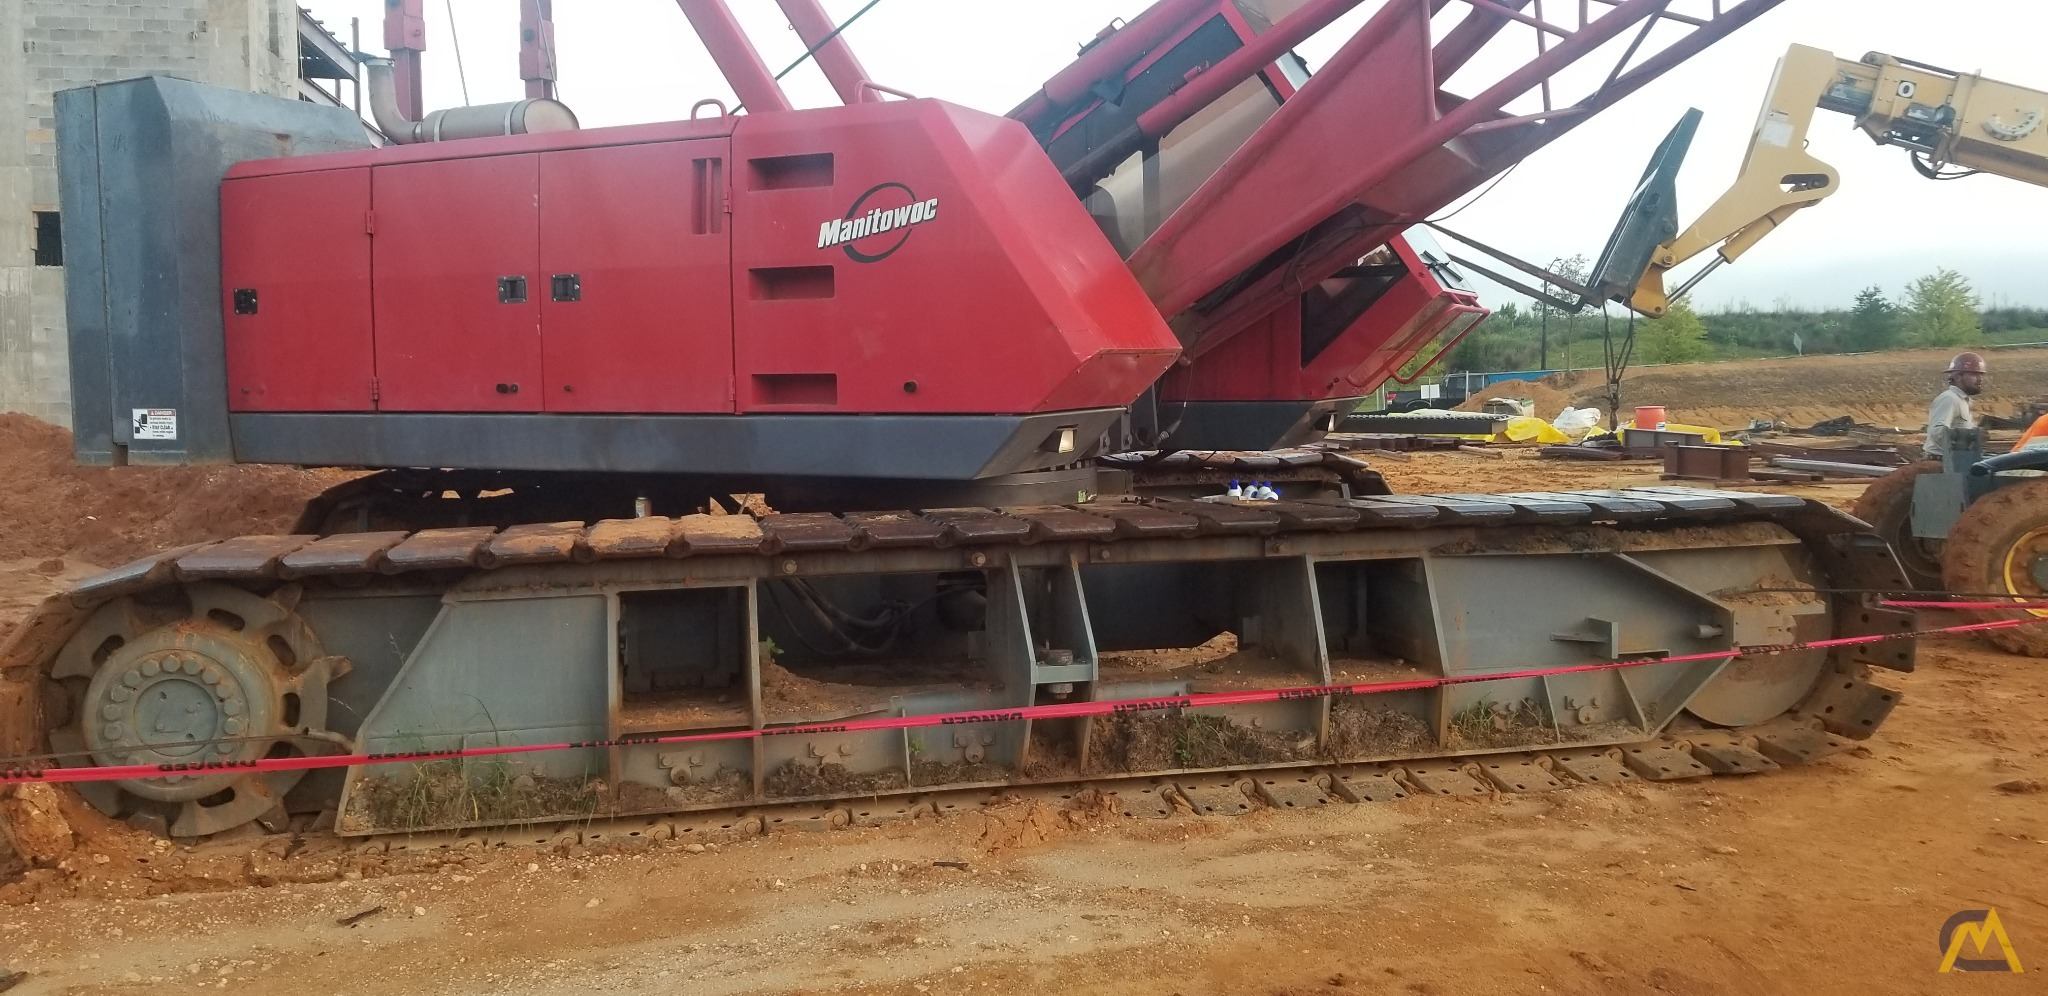 1998 Manitowoc 222EX 100-Ton Lattice Boom Crawler Crane 8